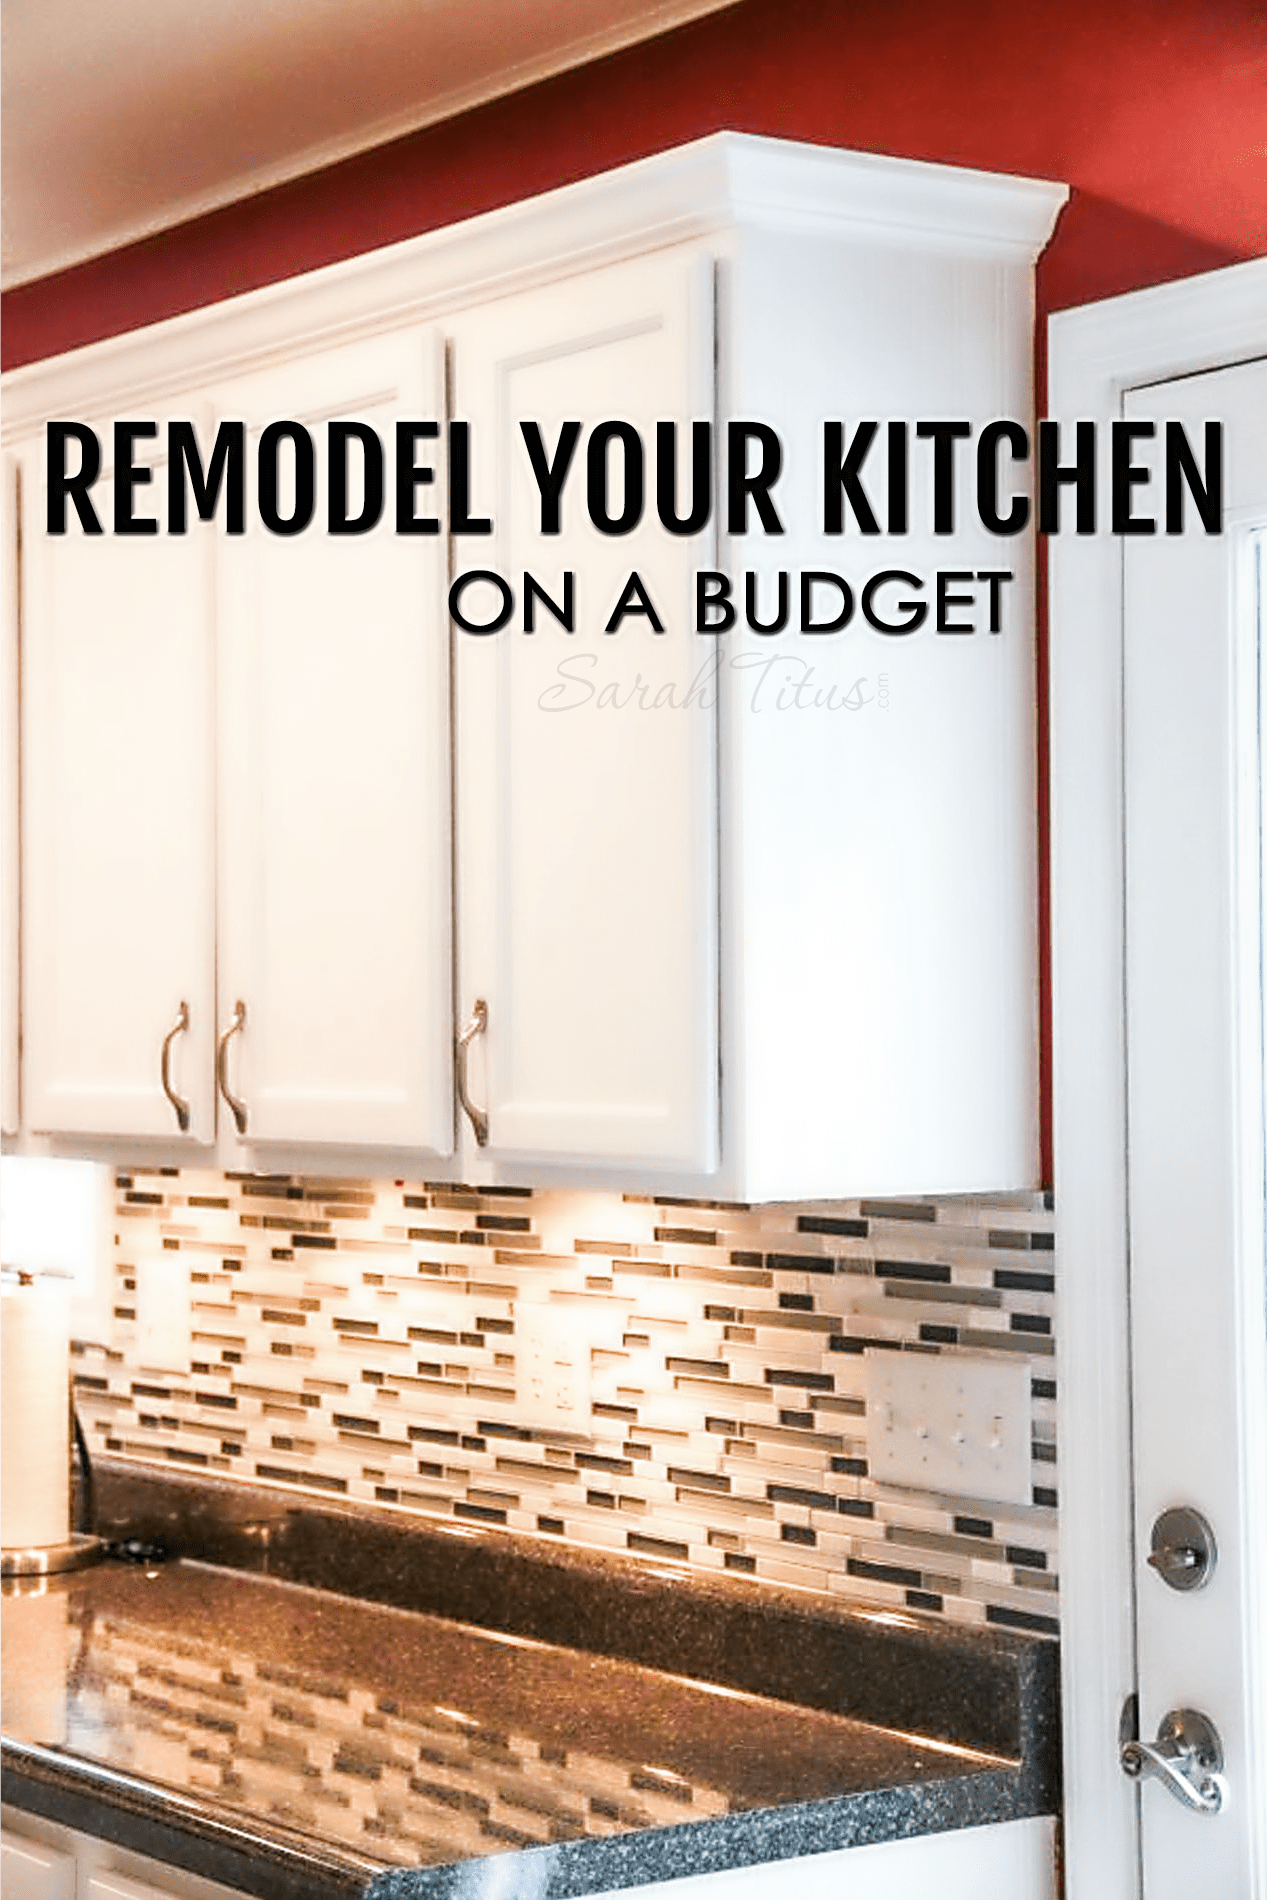 inexpensive kitchen cabinets that look expensive inexpensive kitchen remodel Most kitchen renovations are very expensive but this trick can make your kitchen look brand